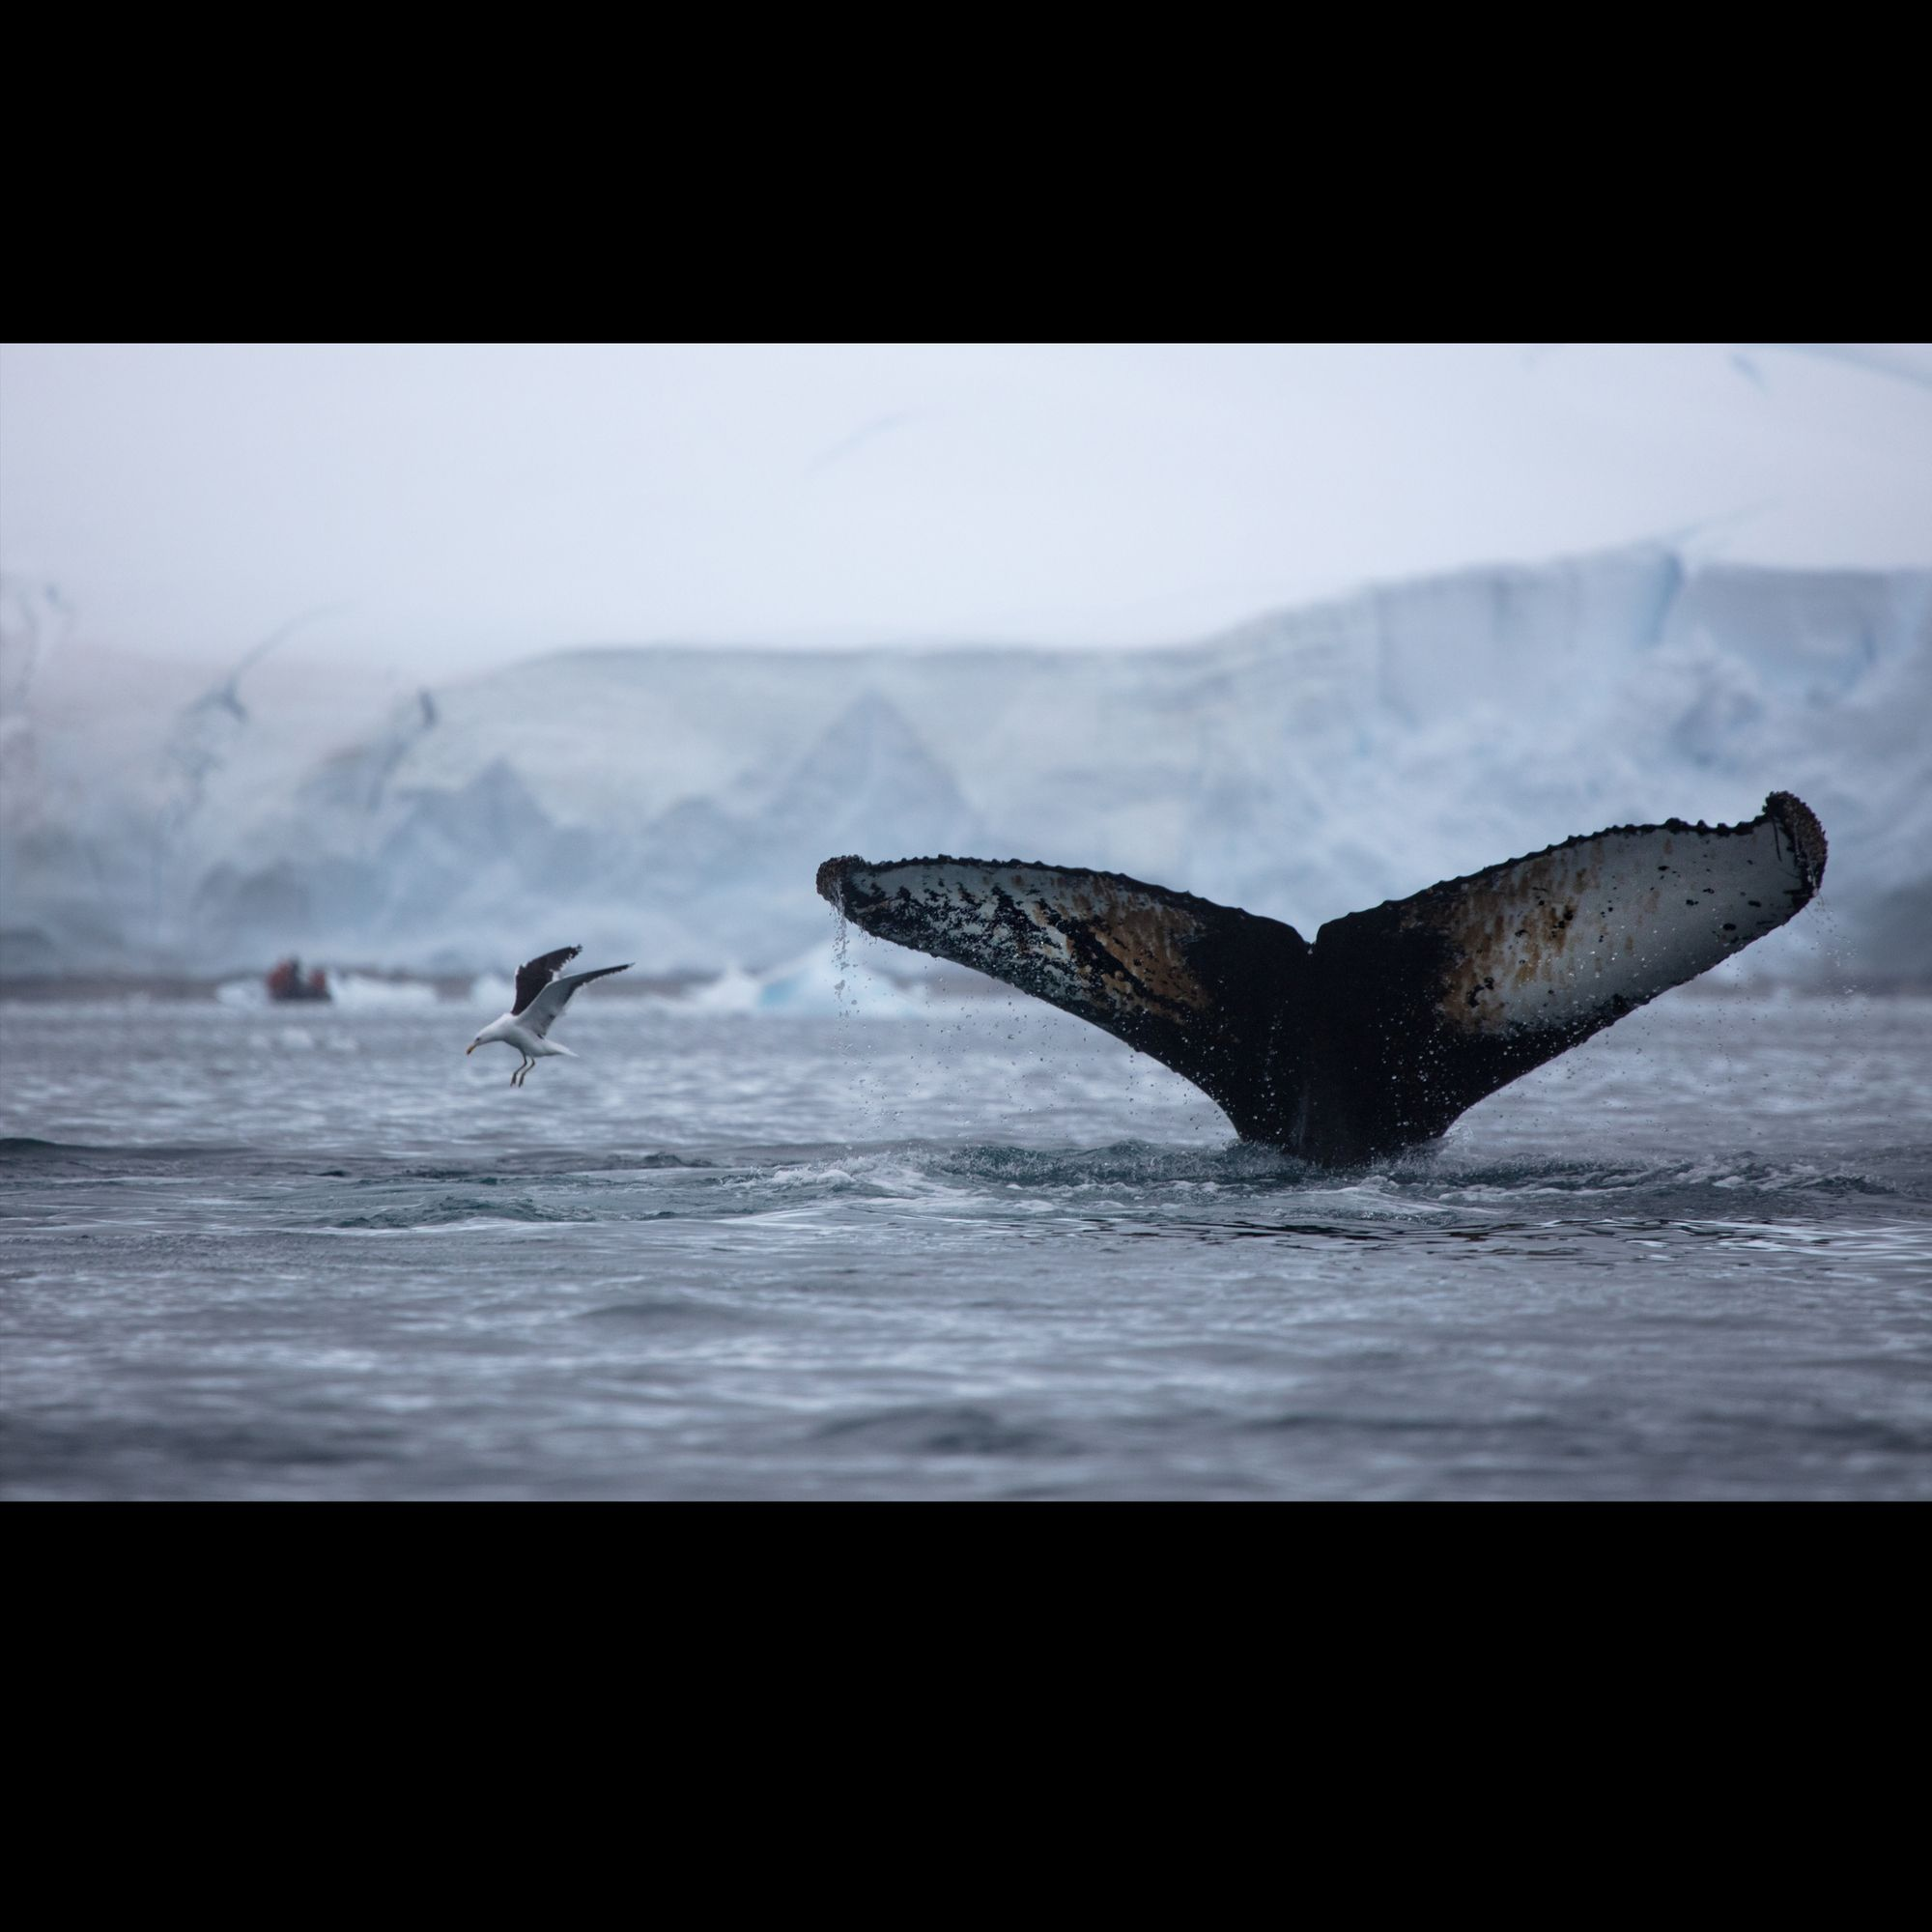 Humpback Whale and Gull in Antarctica . . . . . #challengeyourself #greenhillsentertainment #travelphotography #dennisgreenhillphotography #nationalgeographic #lindbladexpeditions #artandsoul #expeditionphotography #saveourplanet #instabirds #yourshotphotographer #savethewhales #humpbackwhale #wildlifephotography #antarctica